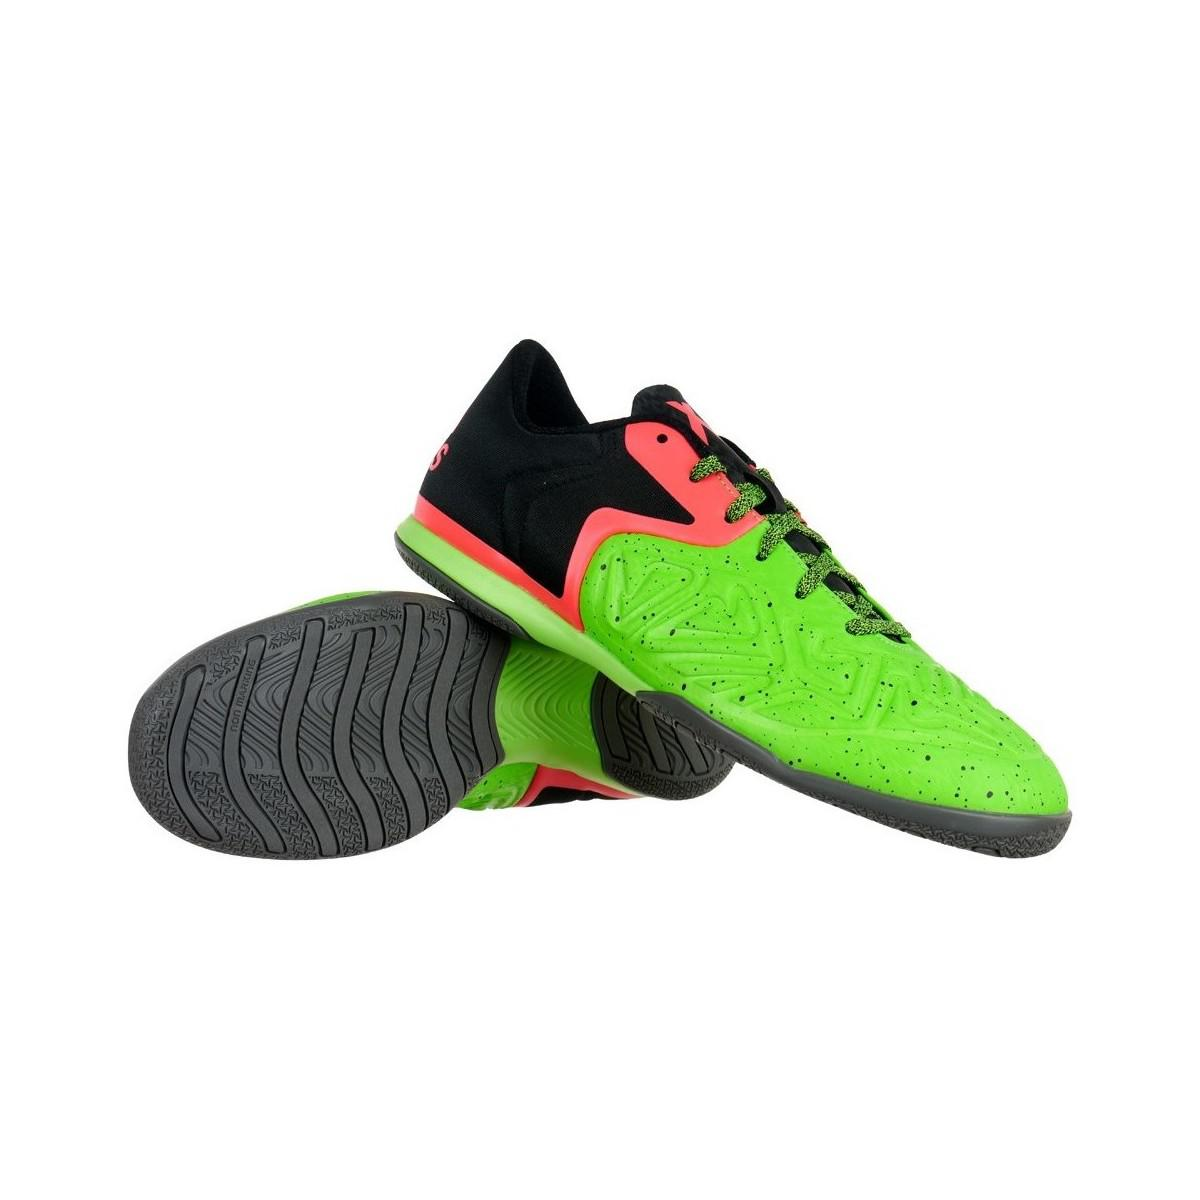 39dc27c8917a Adidas X 152 Ct Men s Football Boots In Green in Green for Men - Lyst